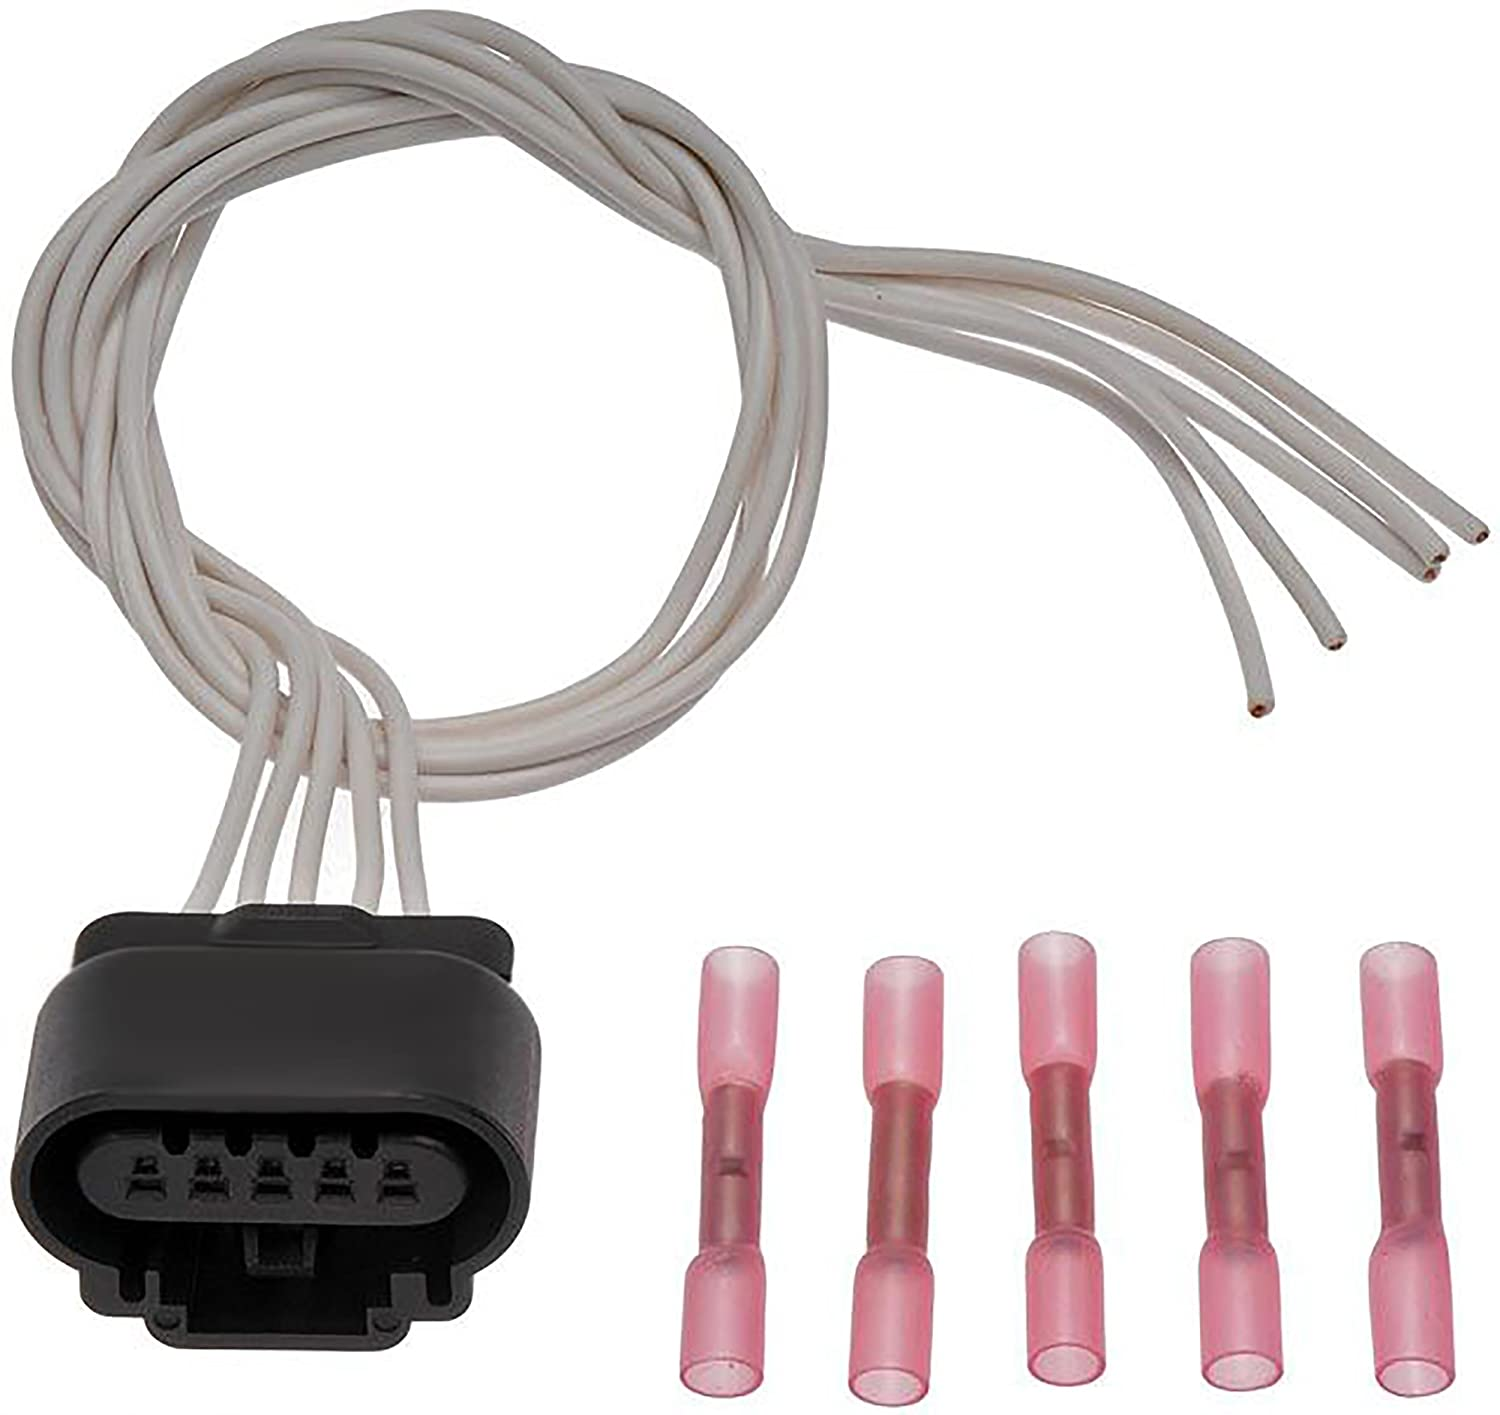 Saab 9 5 Trailer Wiring Harness Get Free Image About Wiring Diagram